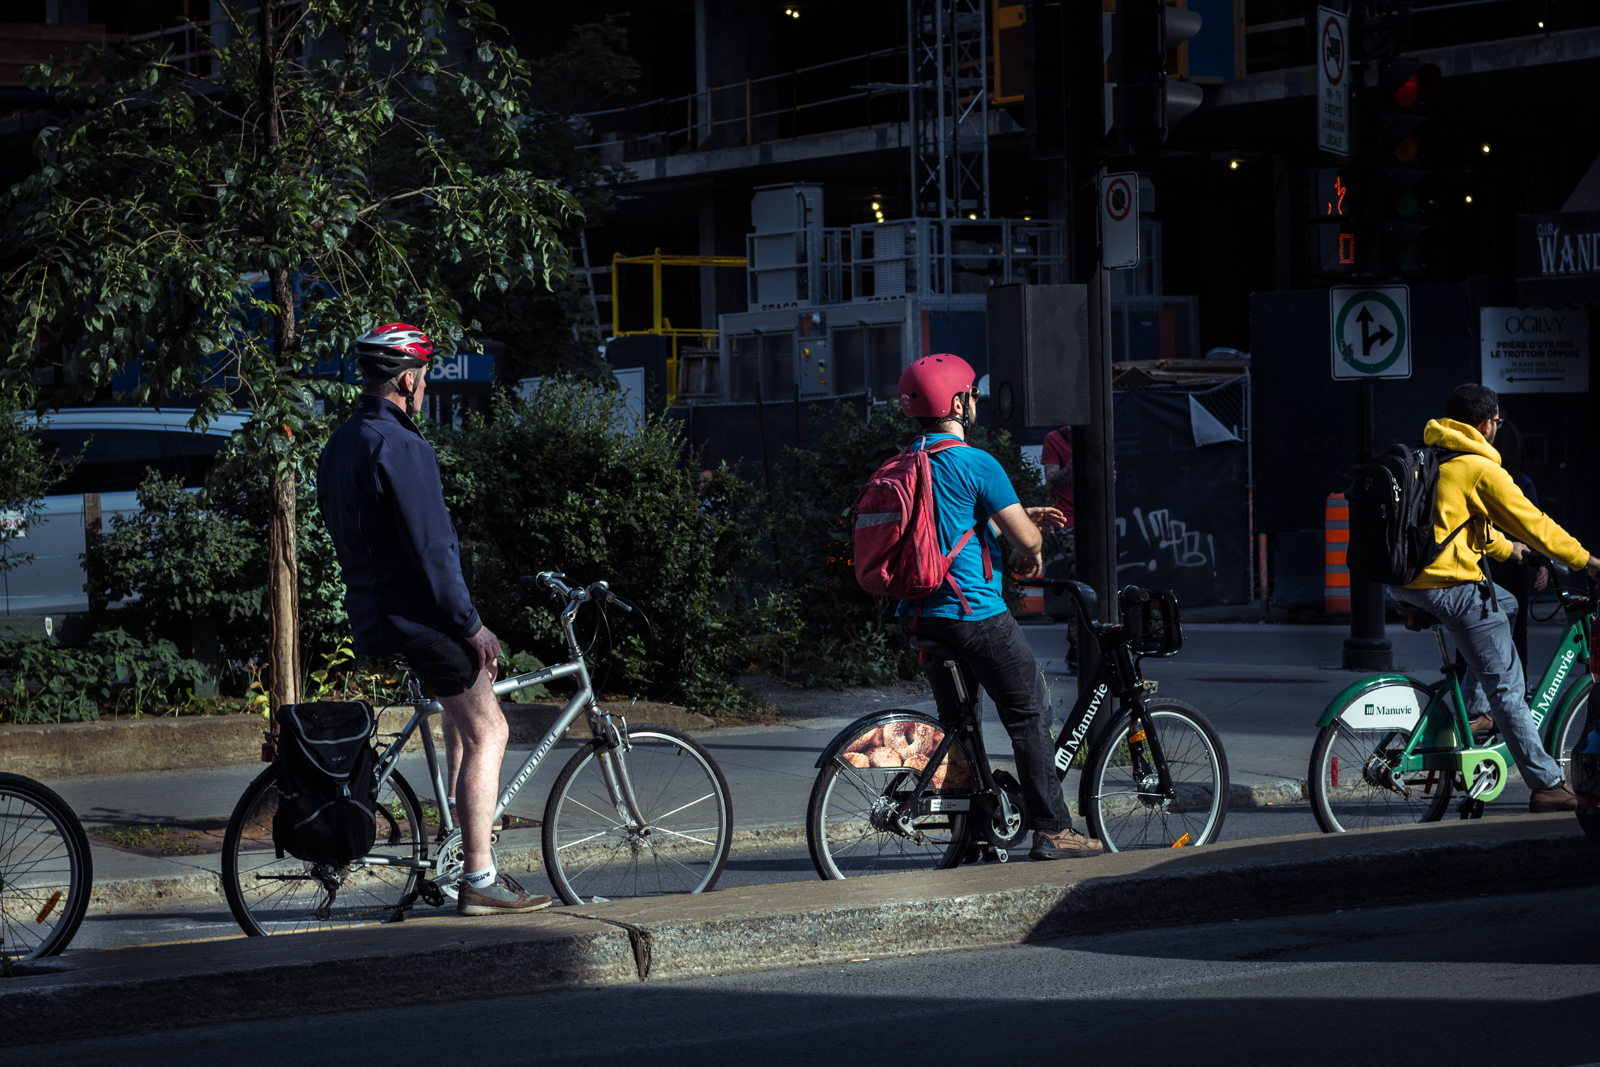 The summer fills the downtown streets with cyclists.